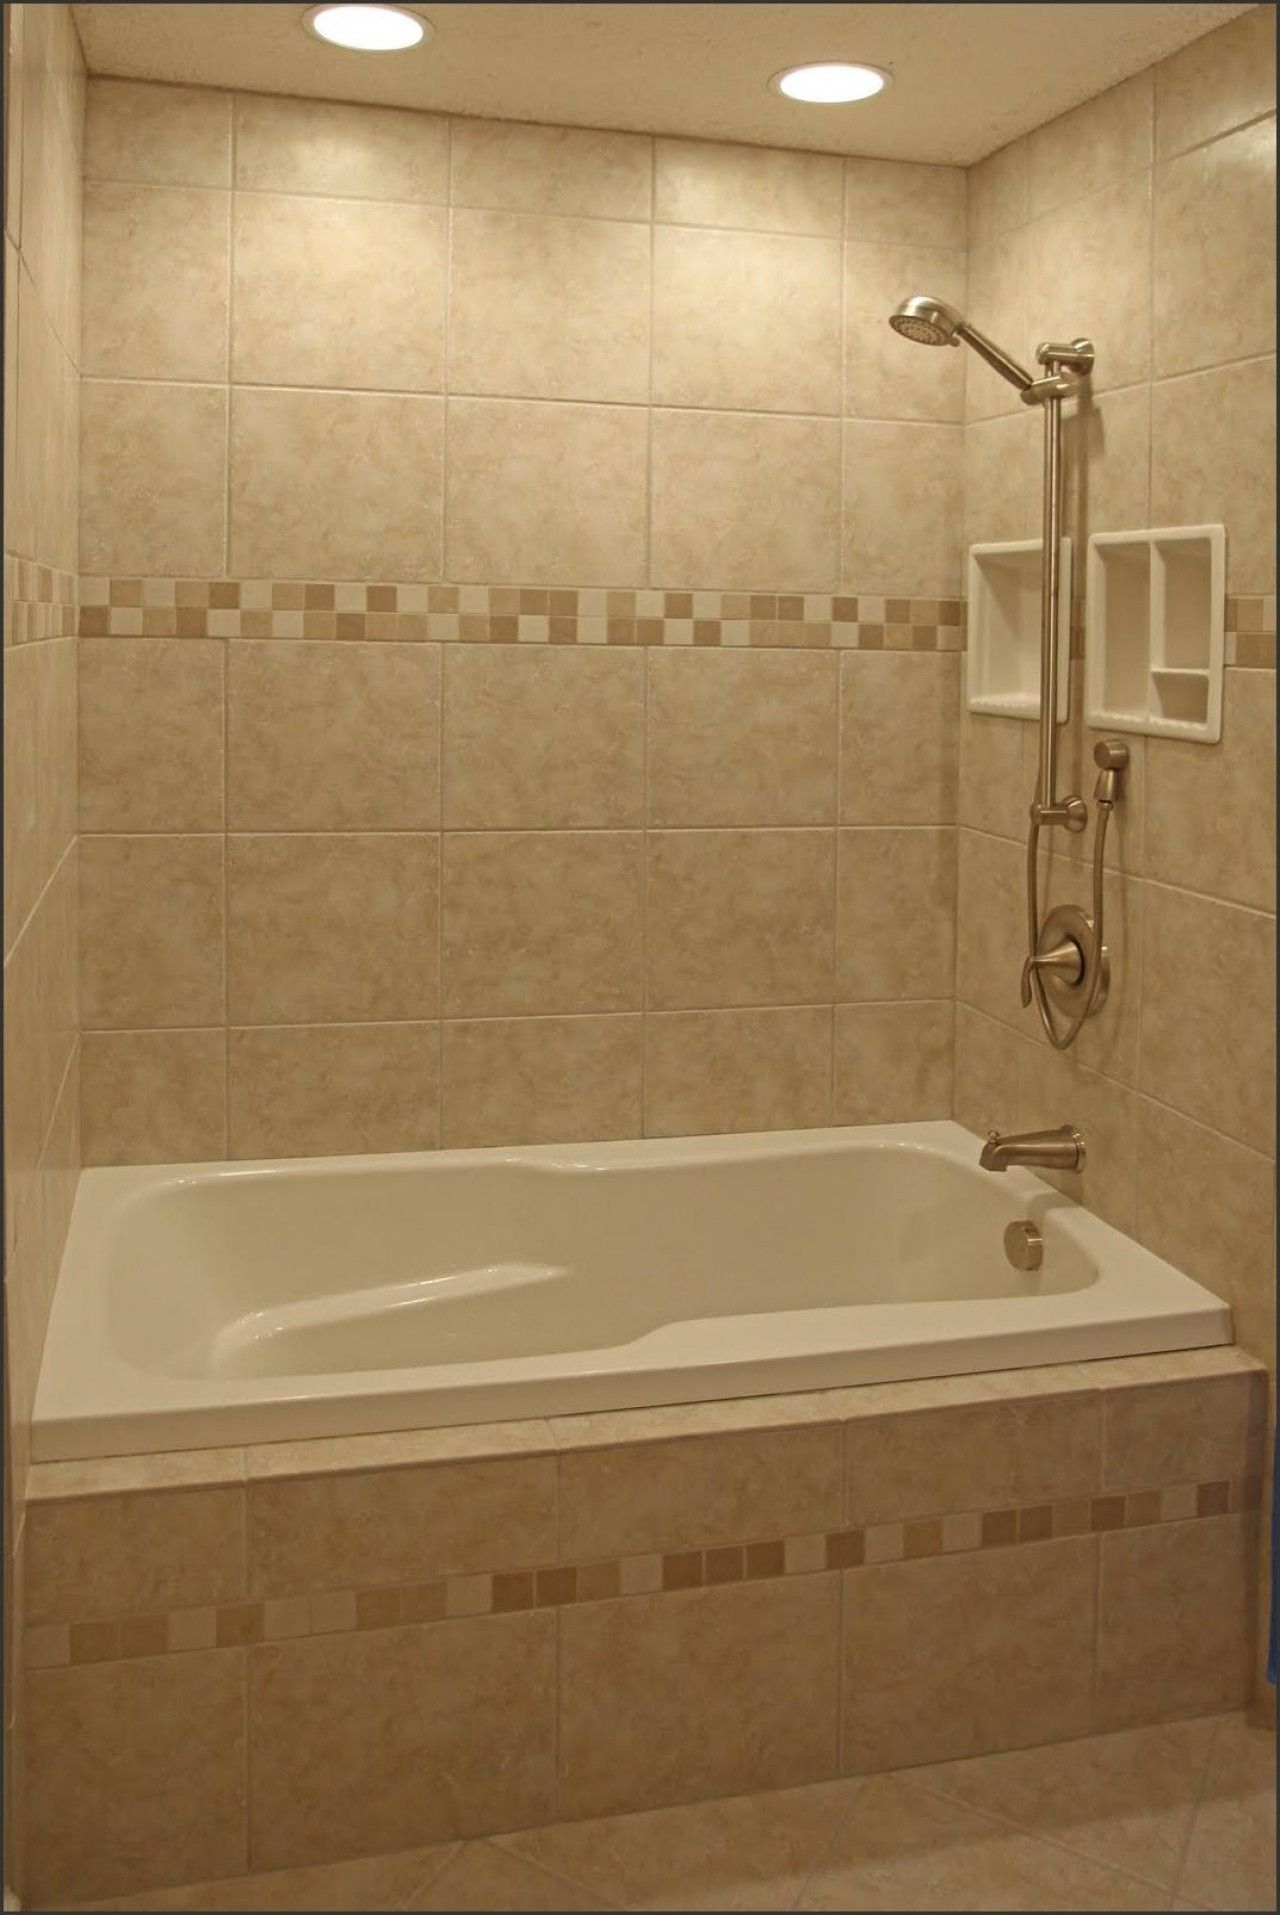 redoing bathroom%0A tubs for small bathrooms  Google Search